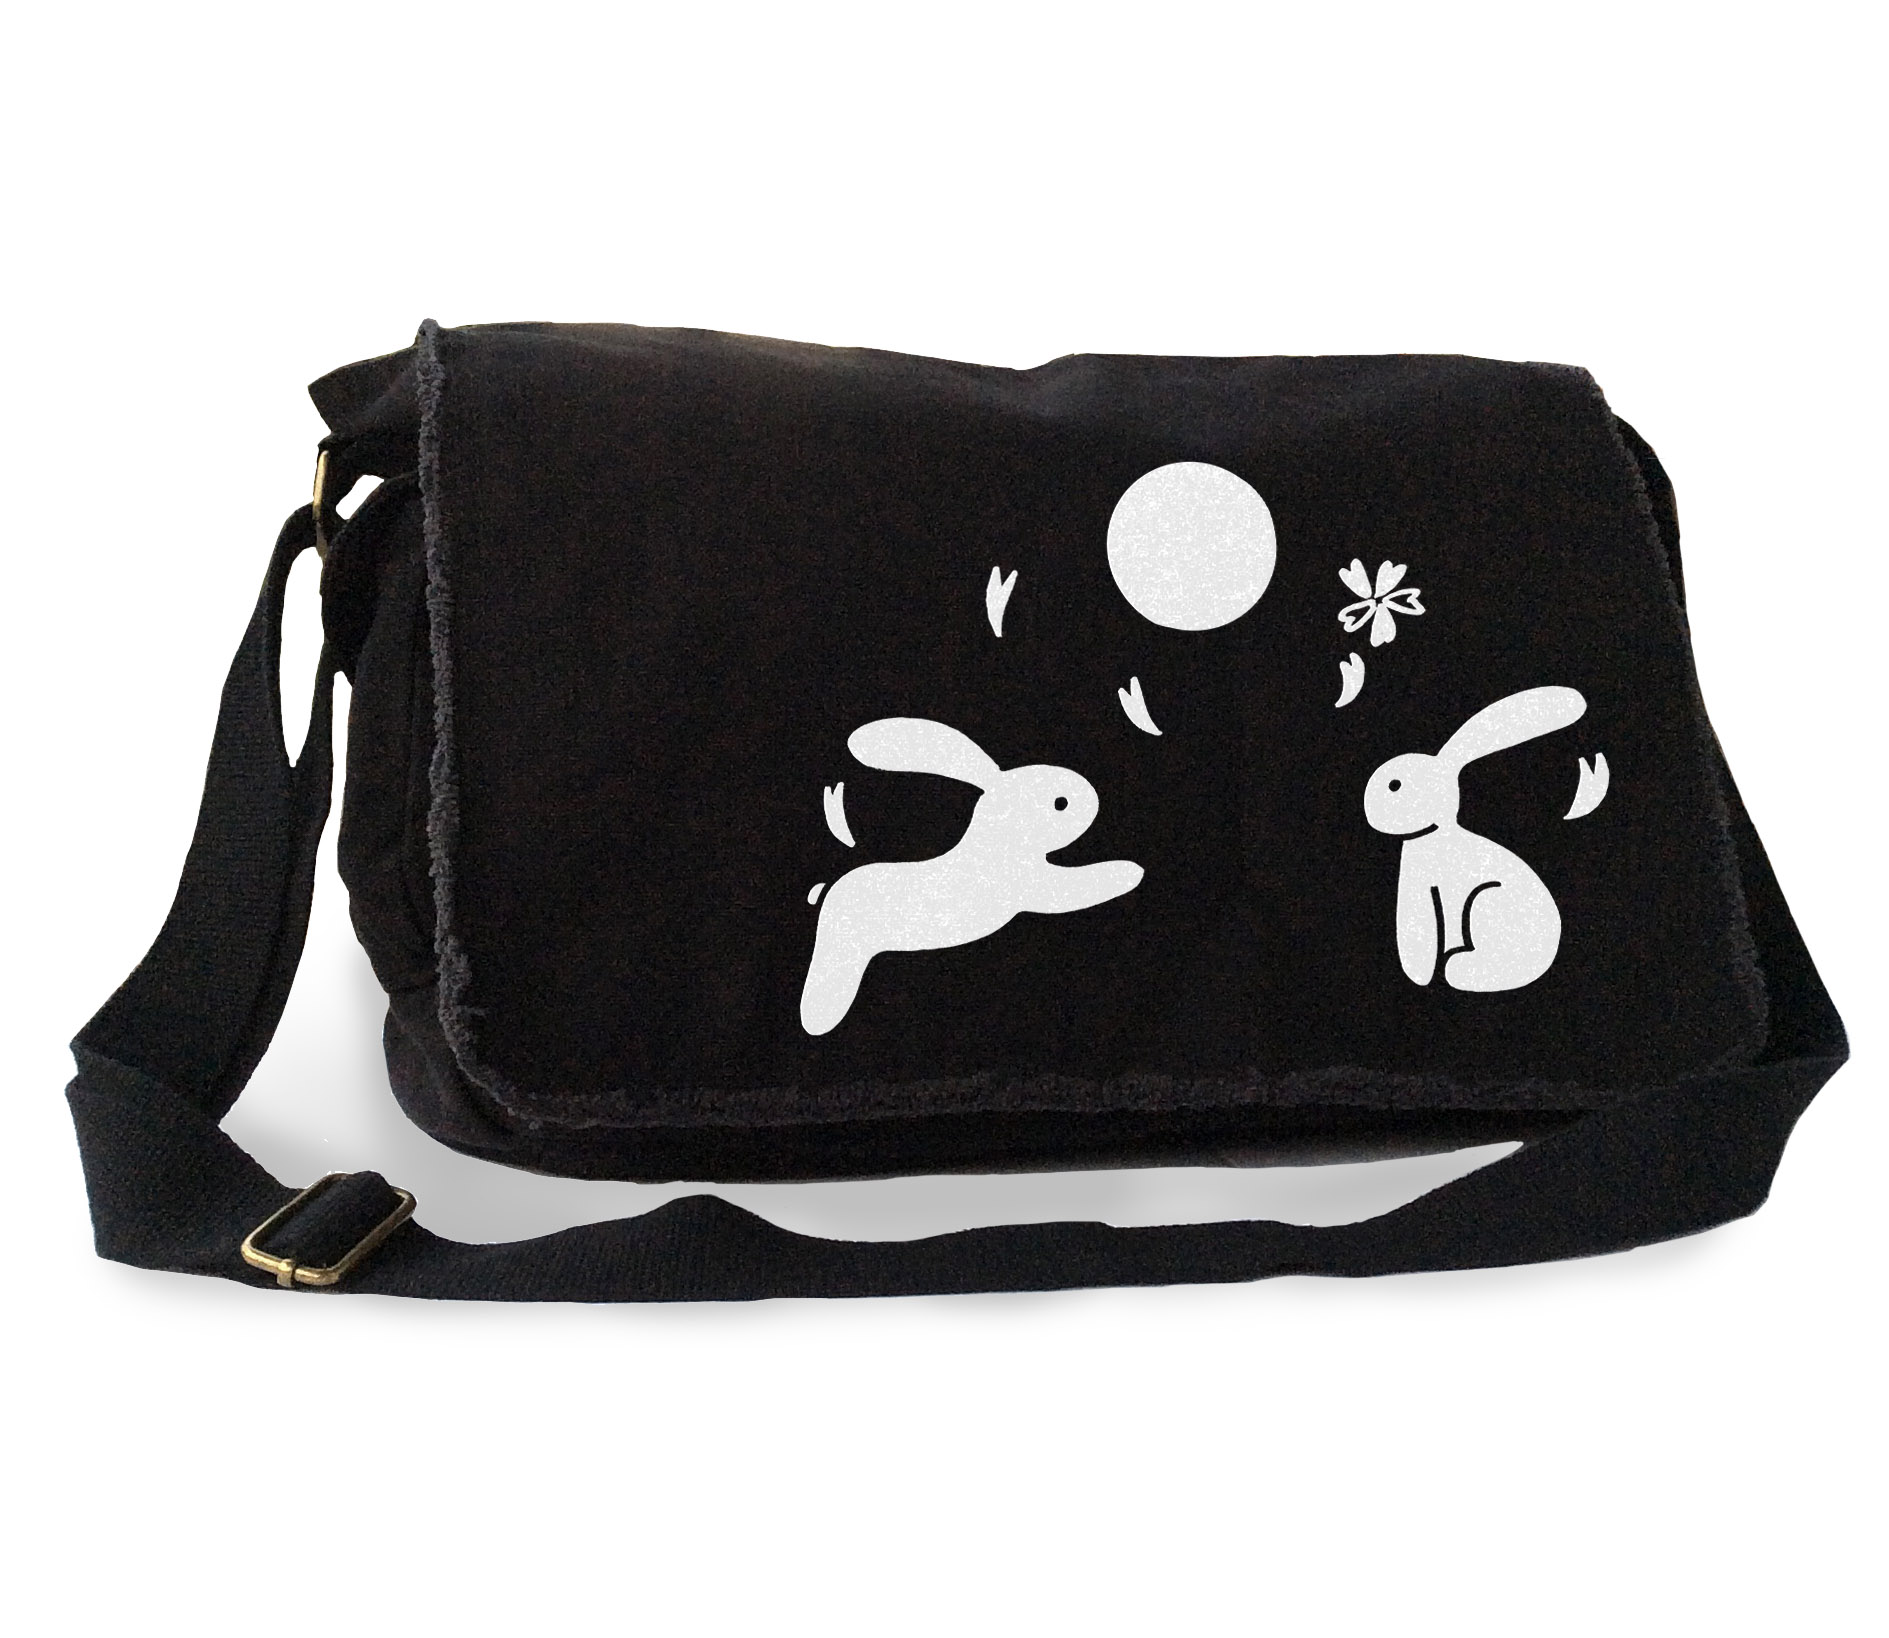 Asian Moon Bunnies Messenger Bag - Black